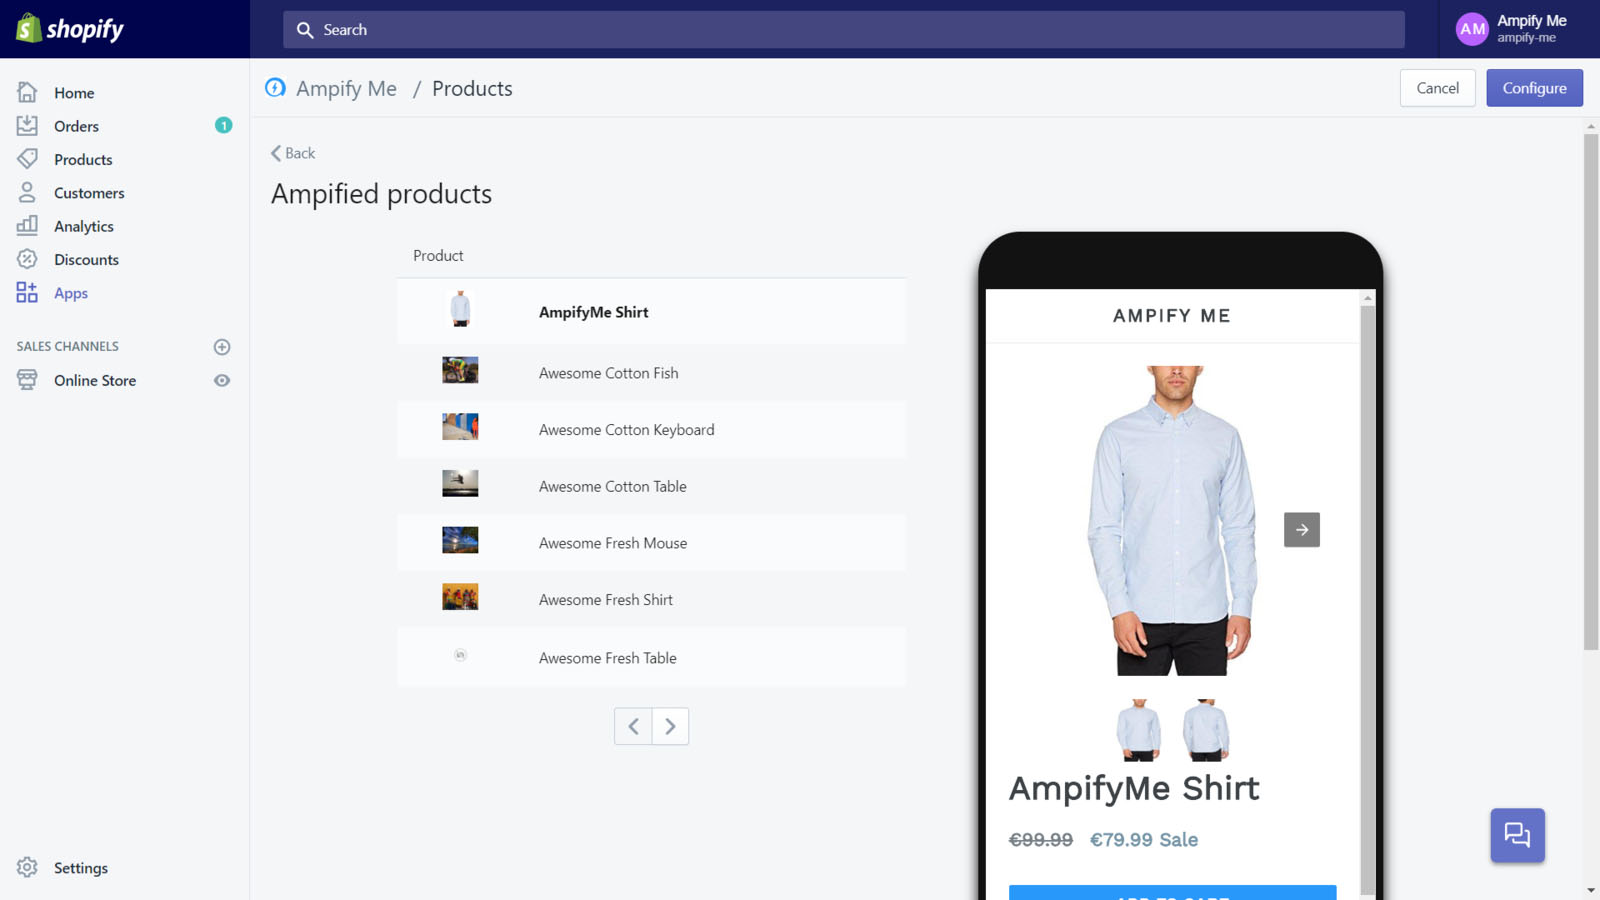 Leading Shopify AMP application - Preview of generated AMP pages